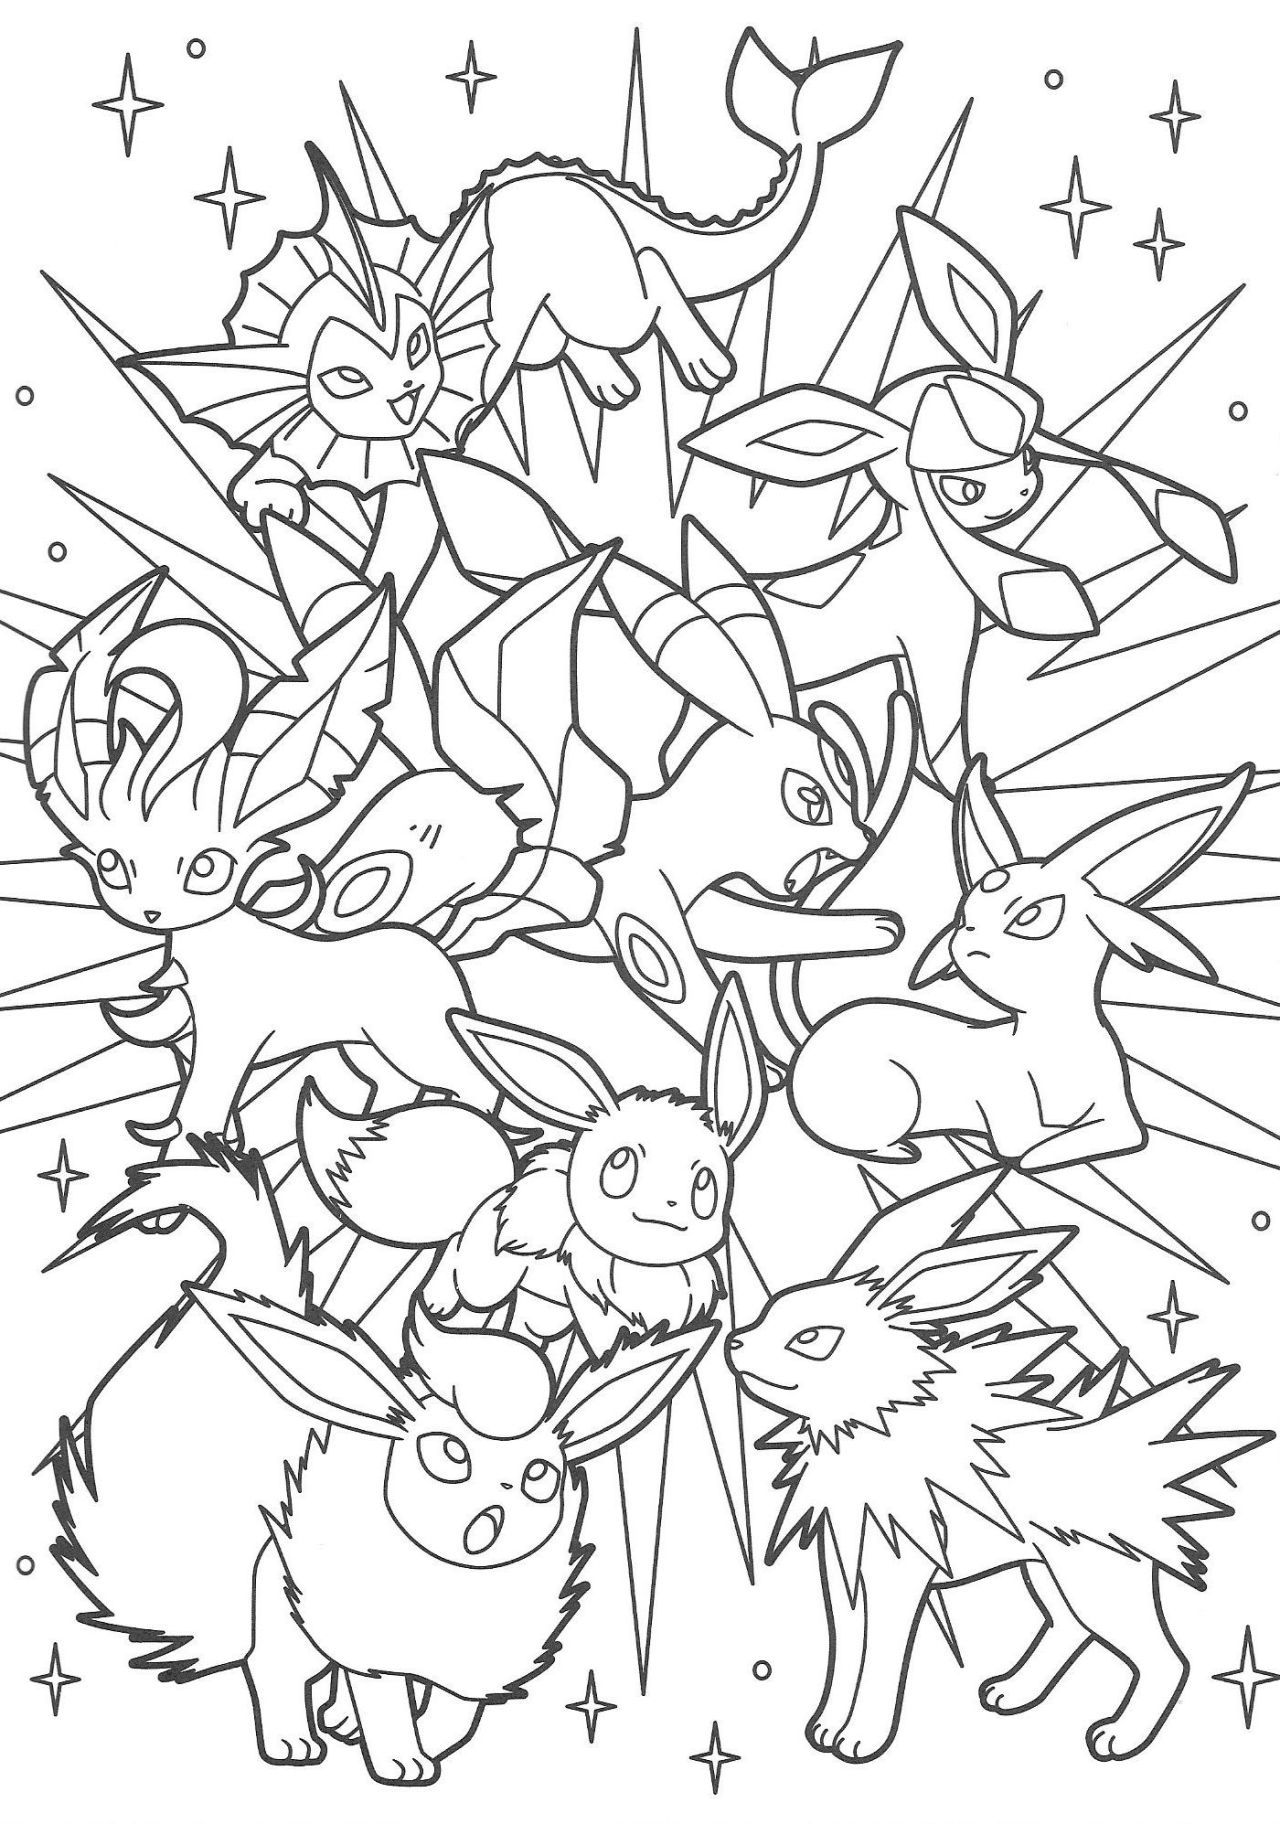 Pokémon scans from pacificpikachus collection pikachu and eevee friends coloring book